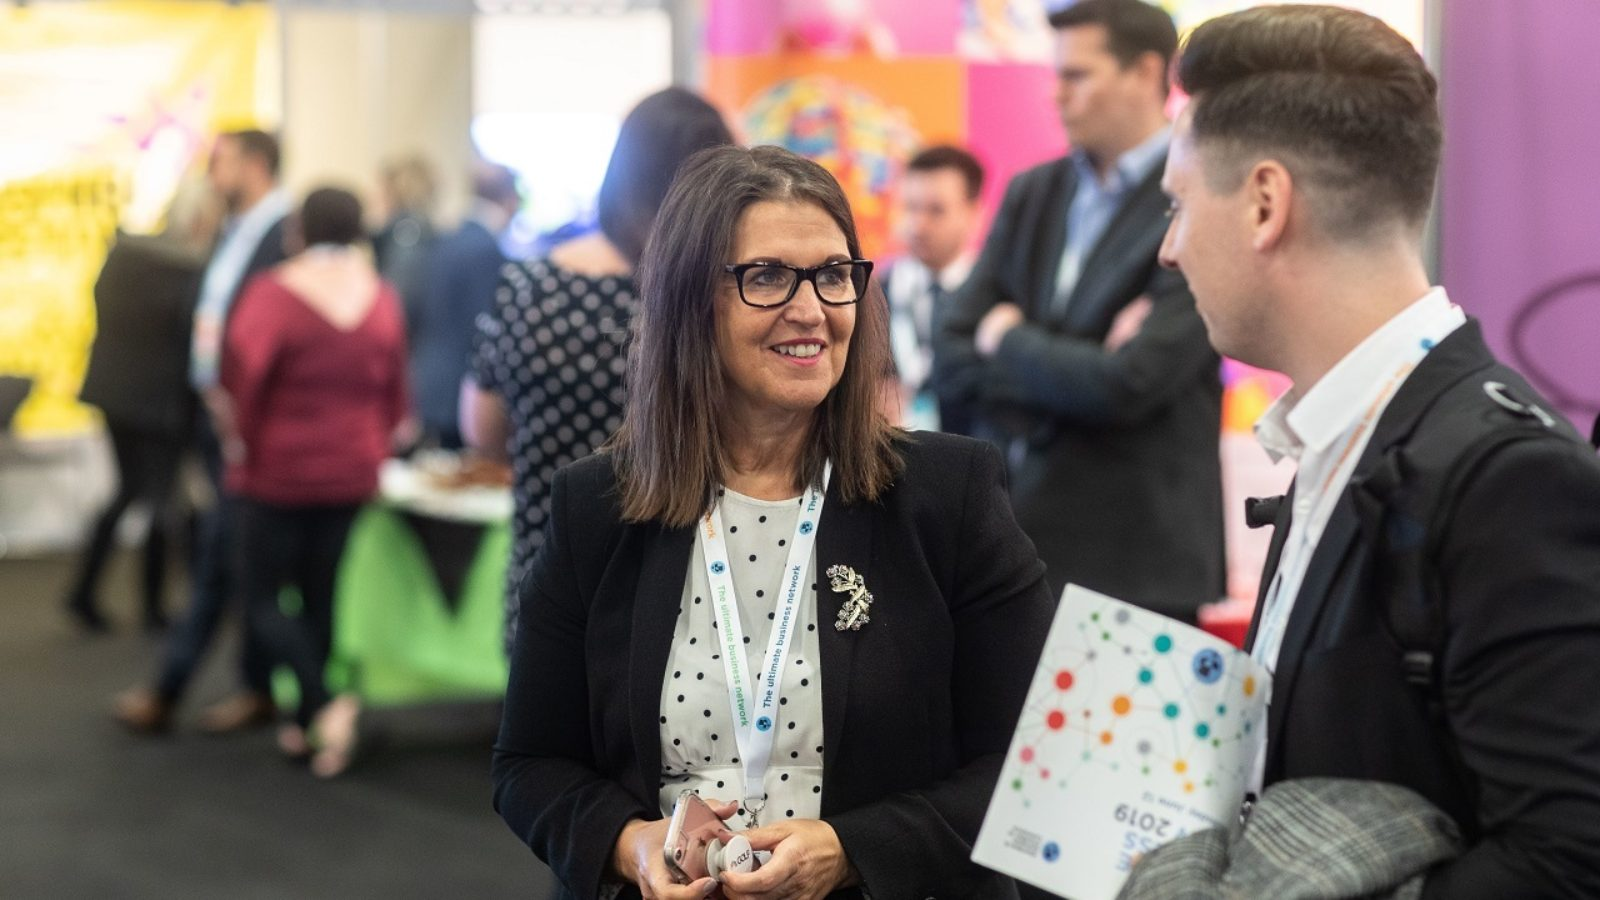 The Ultimate Business Show 2020: Attend #TUBS2020 and explore the diversity of North-east business through exhibitors, speakers and networking